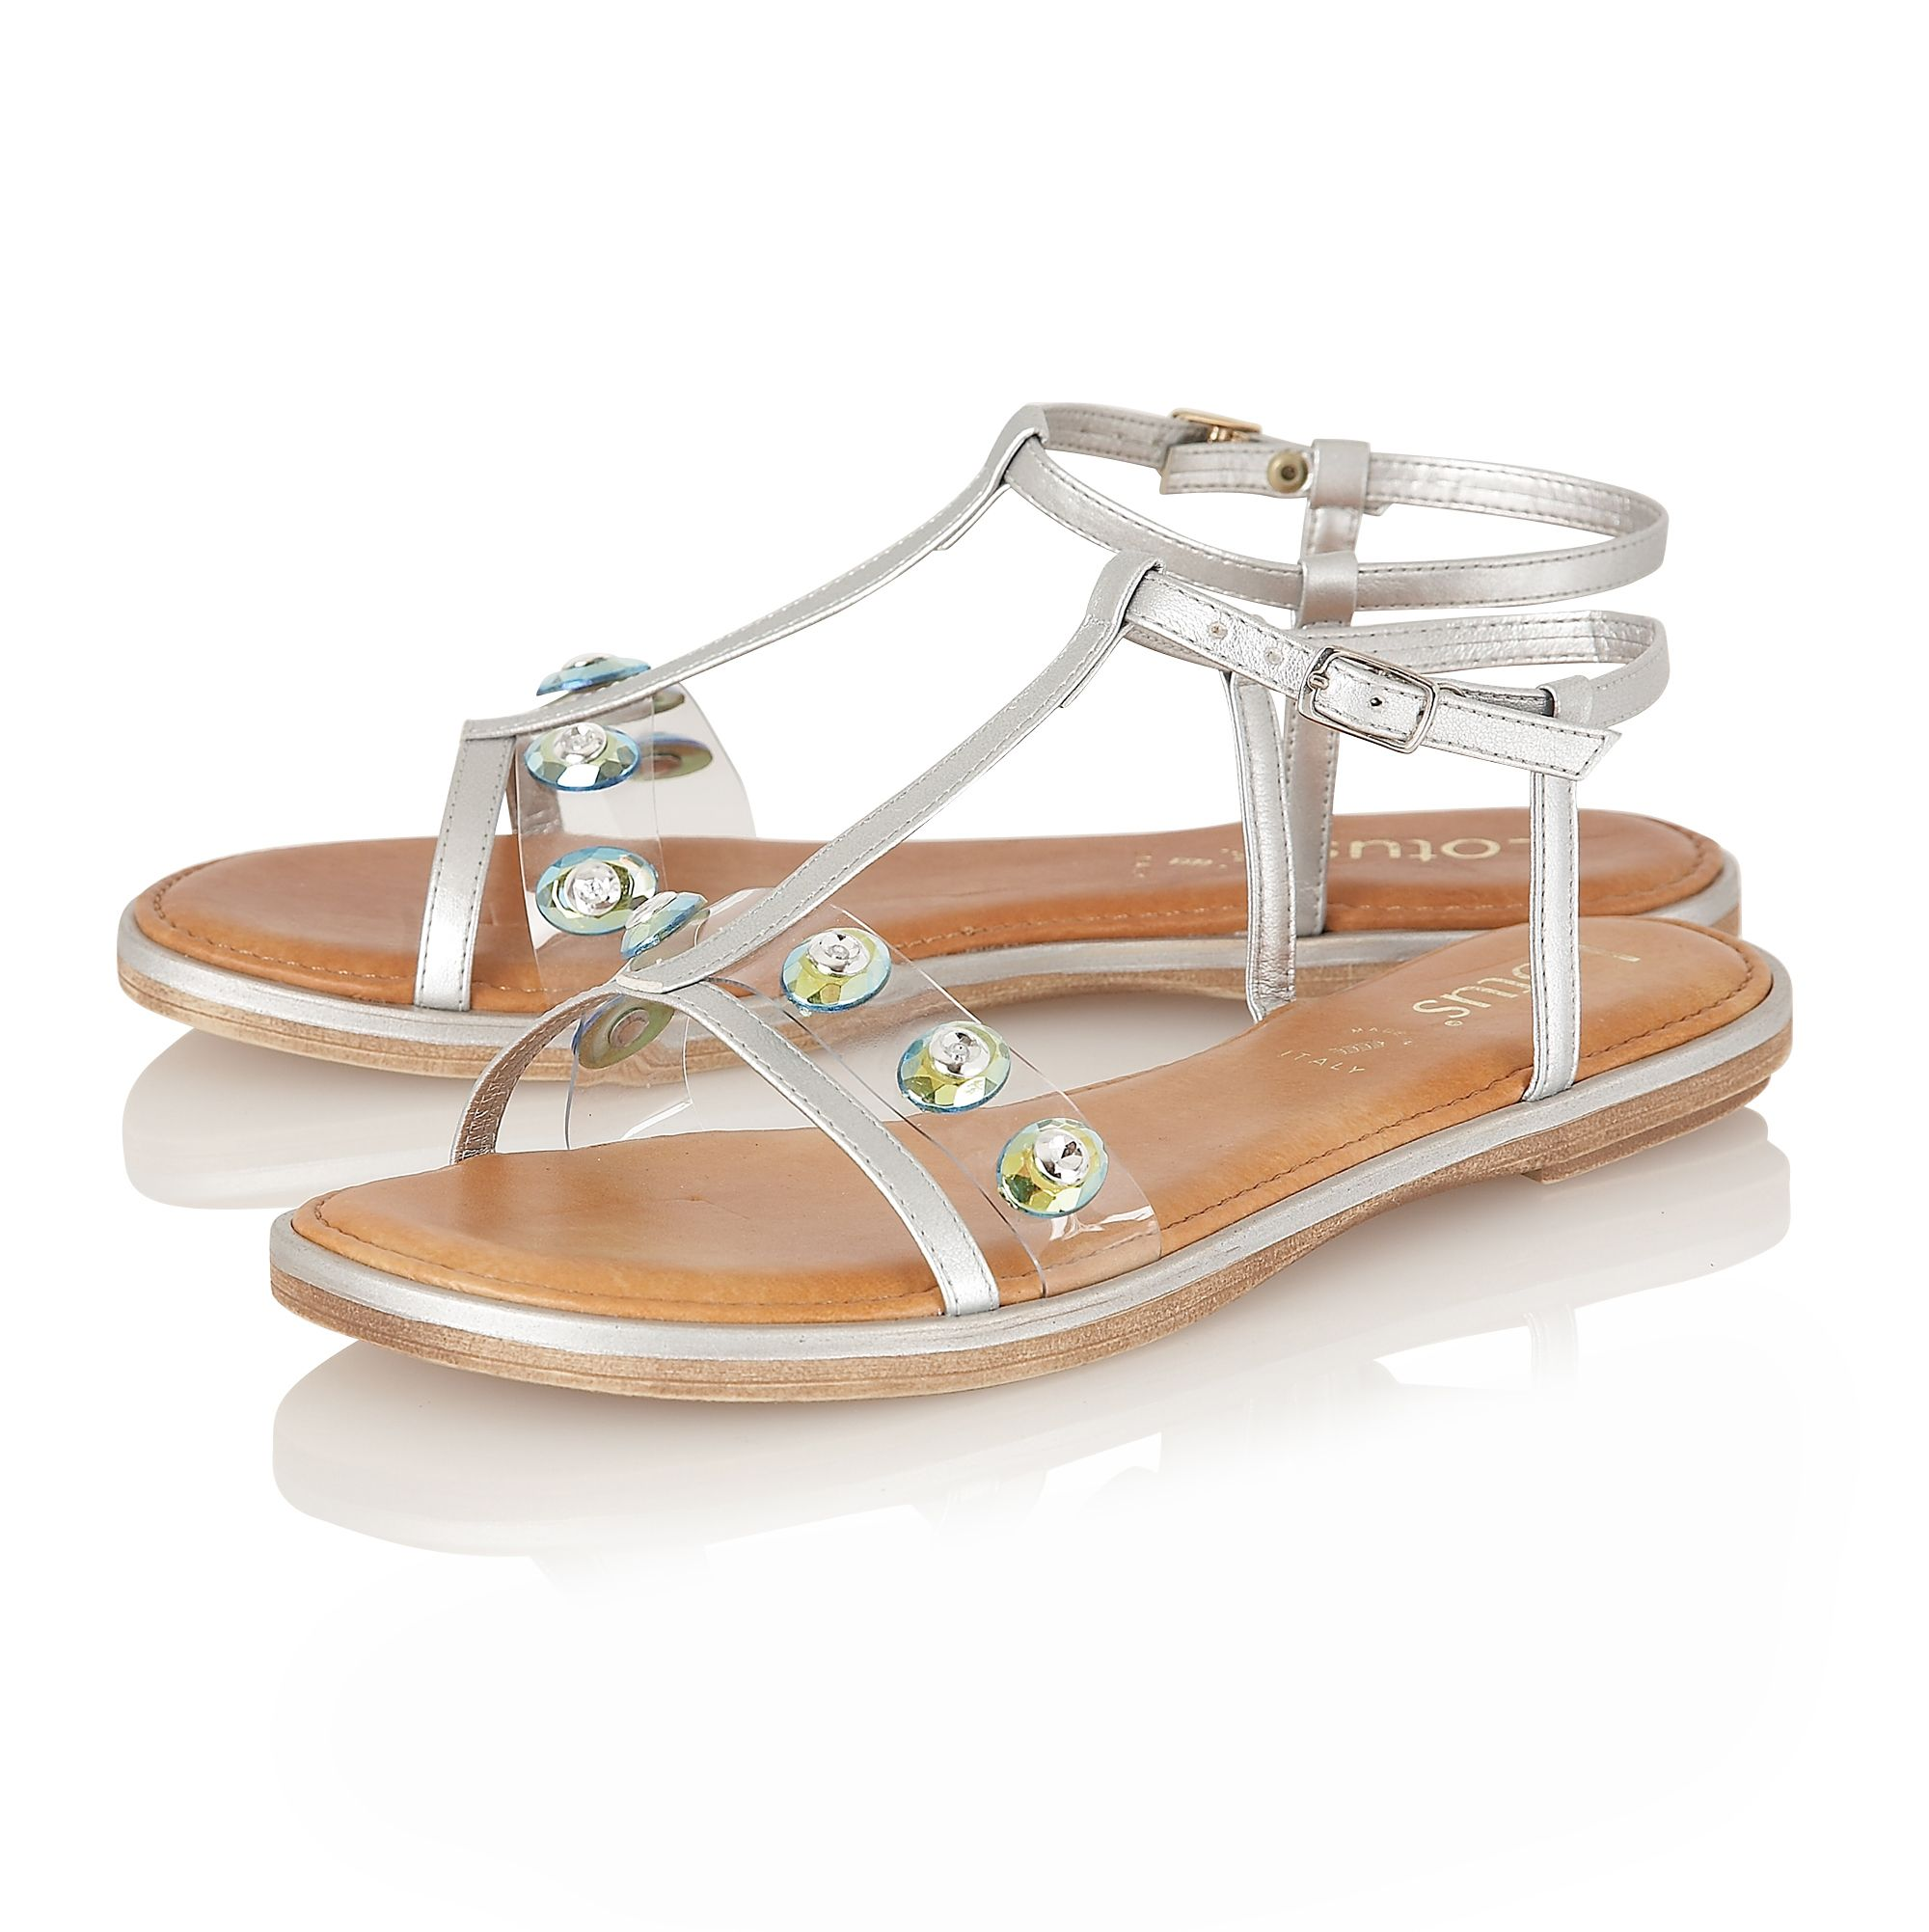 Rimini casual sandals